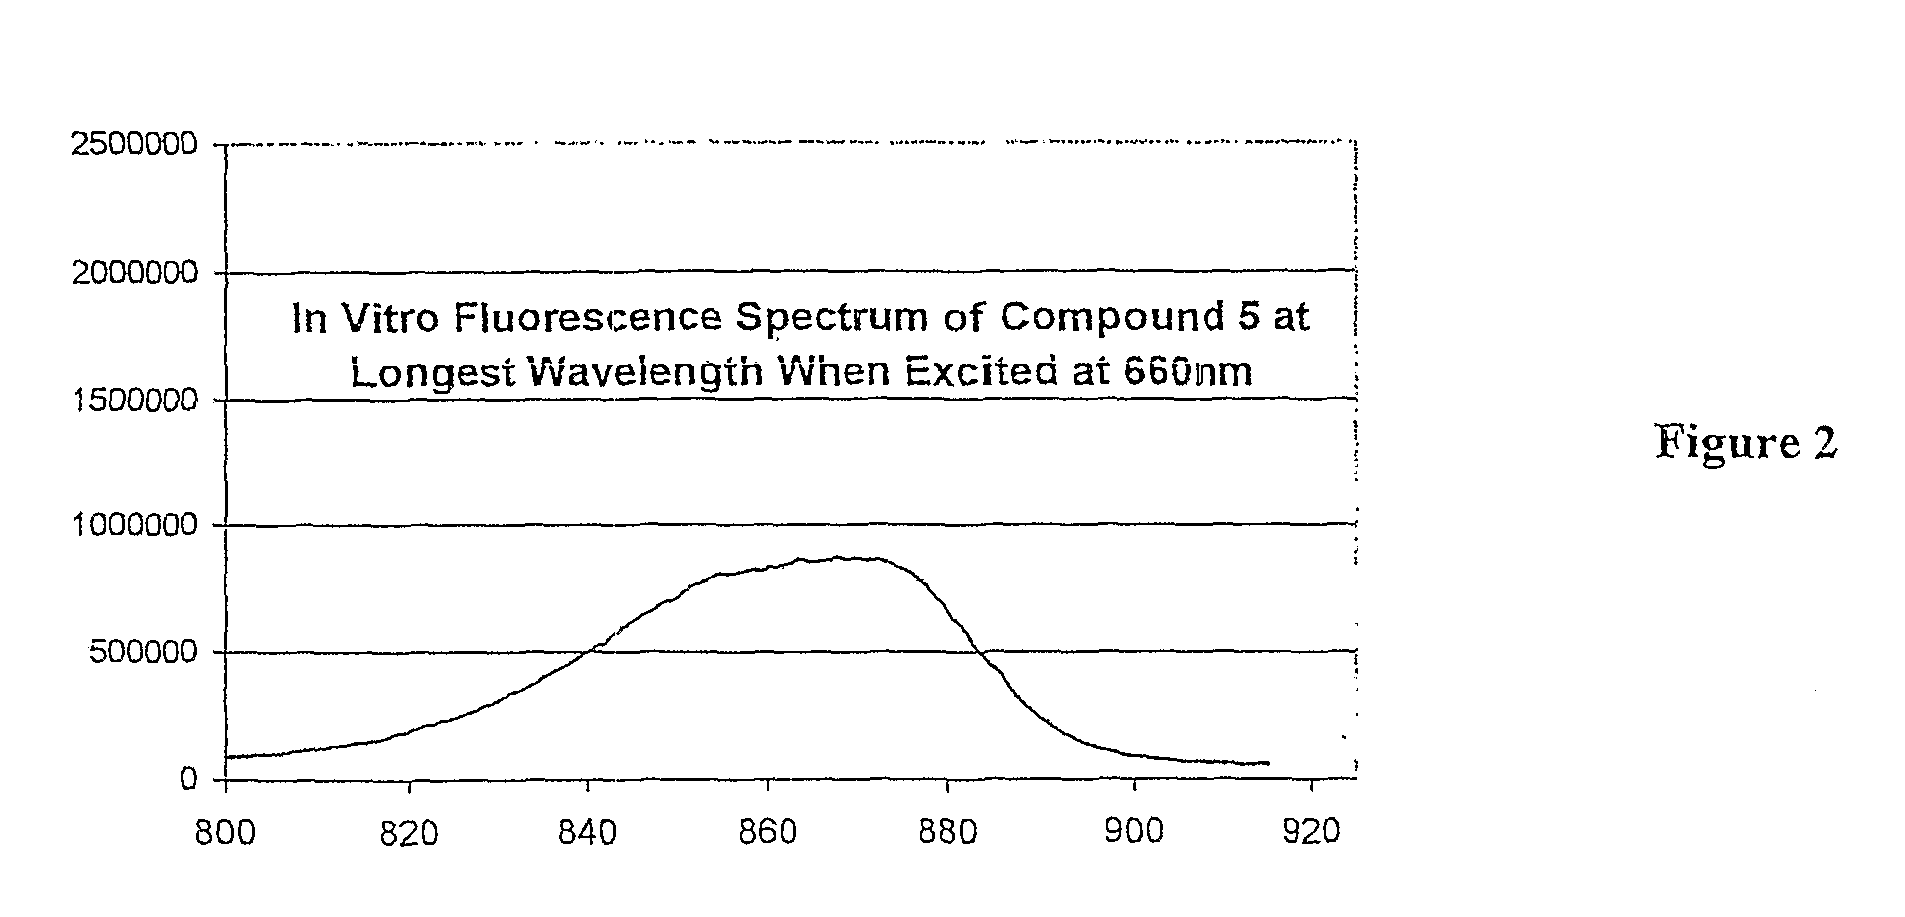 tetrapyrrole compounds Norman ratcliffe has worked for a range of companies in the electronics and characterization by surface plasmon resonance of langmuir-blodgett monolayers of three macrocyclic conjugated tetrapyrrole compounds exposed to chlorine gas.